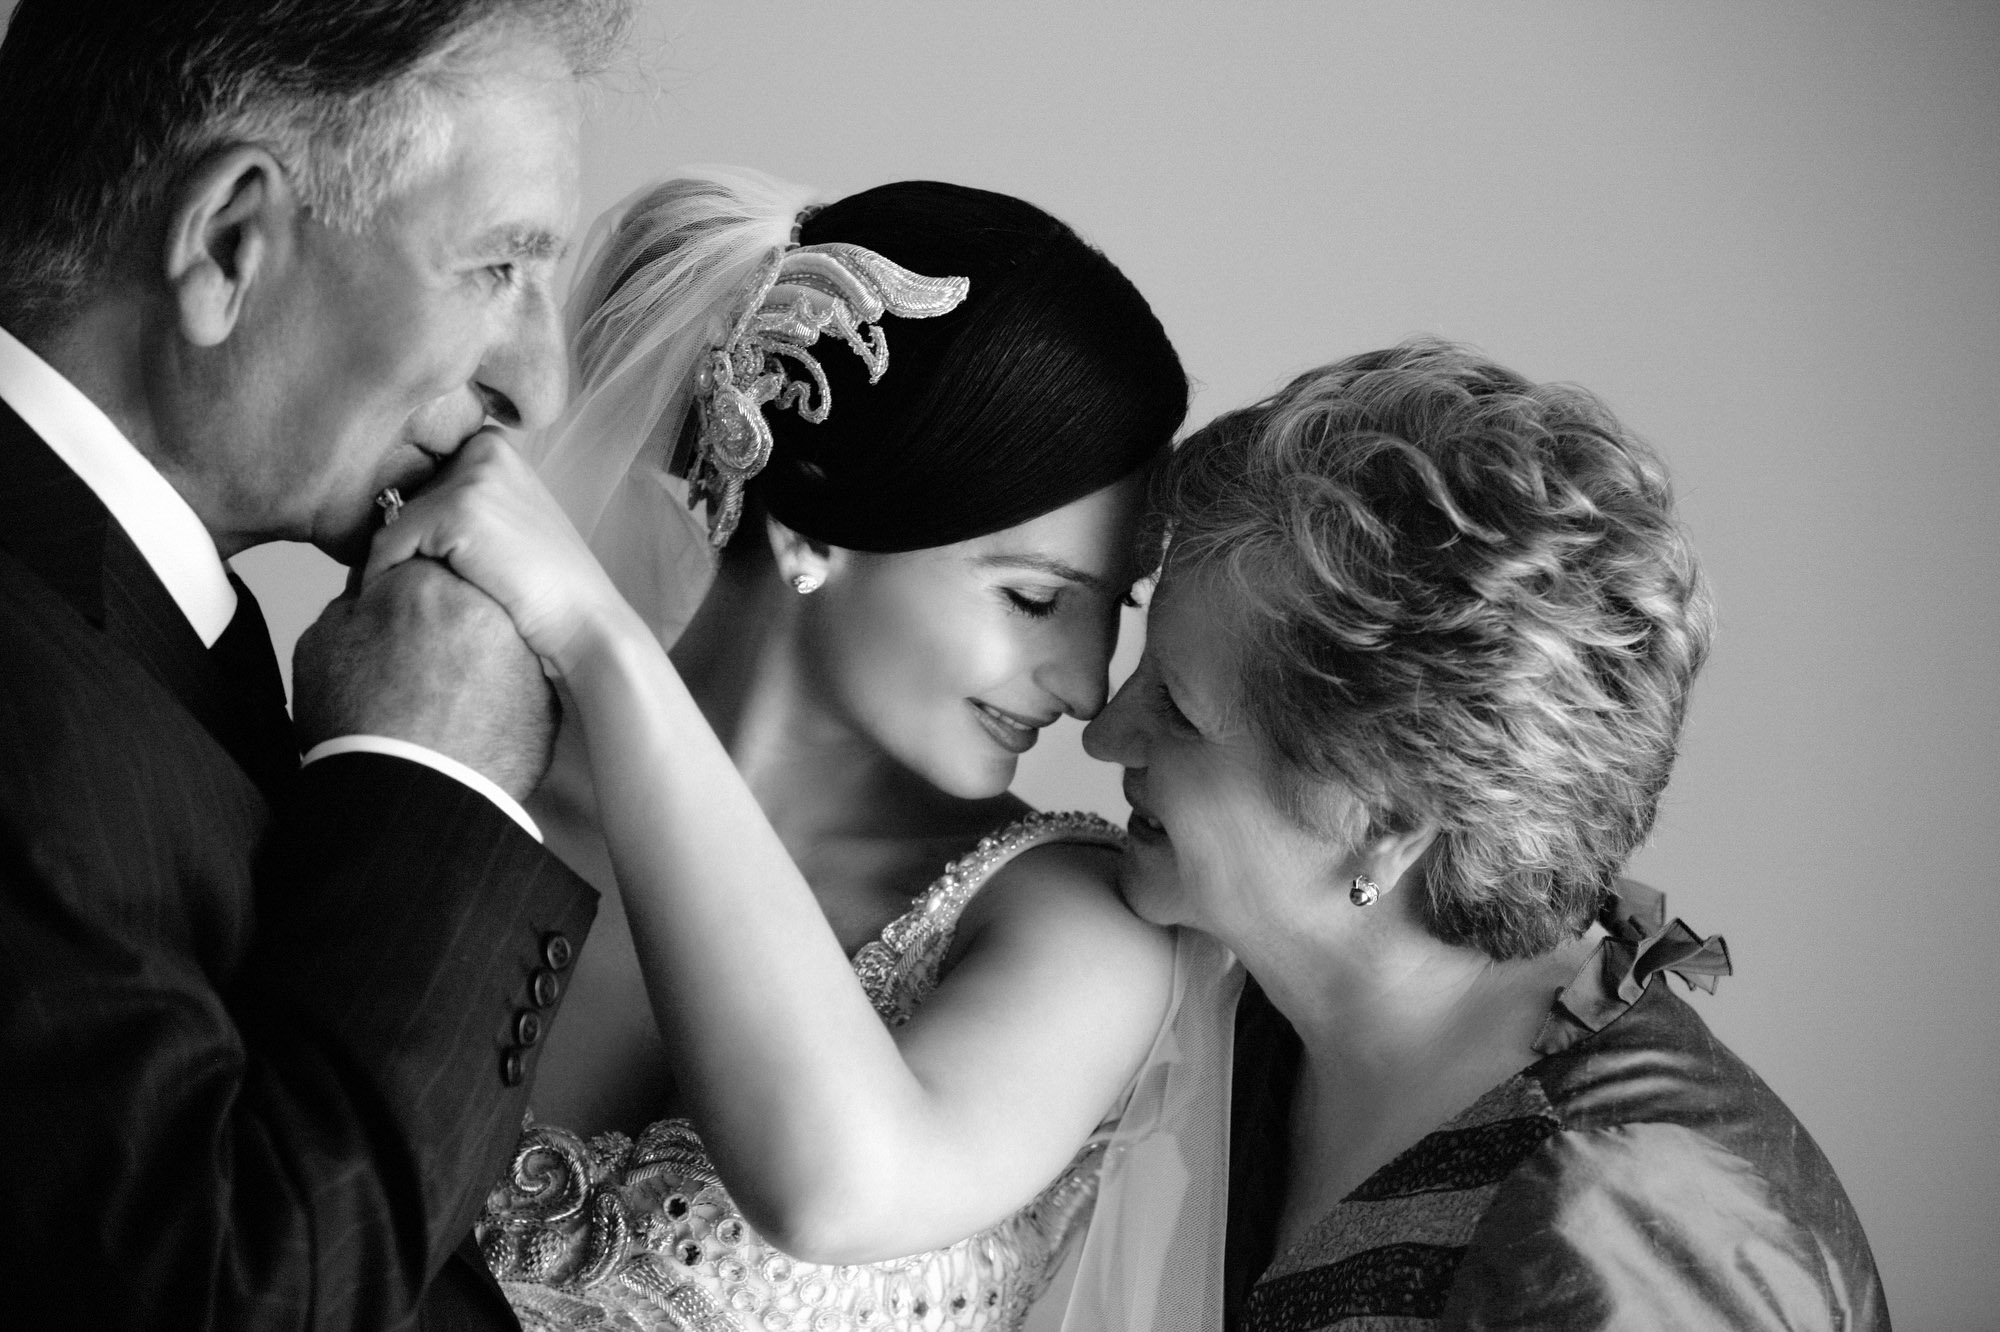 mom-dad-bride-share-sweet-touching-moment-best-wedding-photos-jerry-ghionis-top-las-vegas-photographer